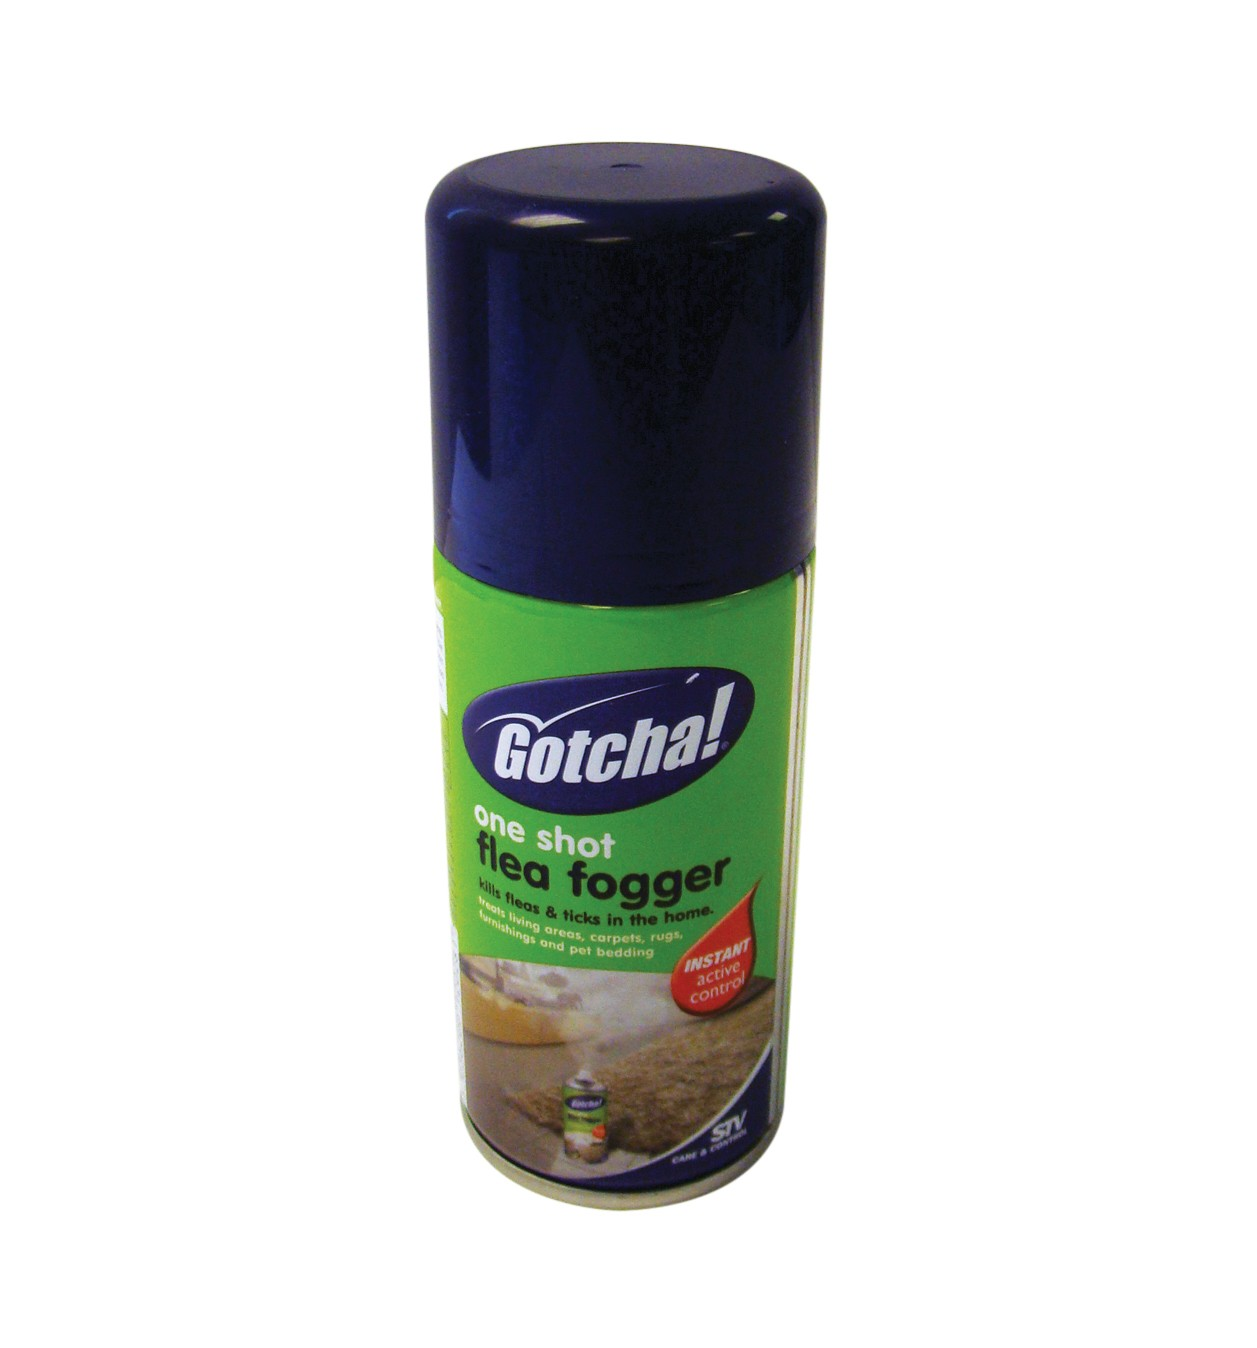 Gotcha! One Shot Flea Fogger 150ml